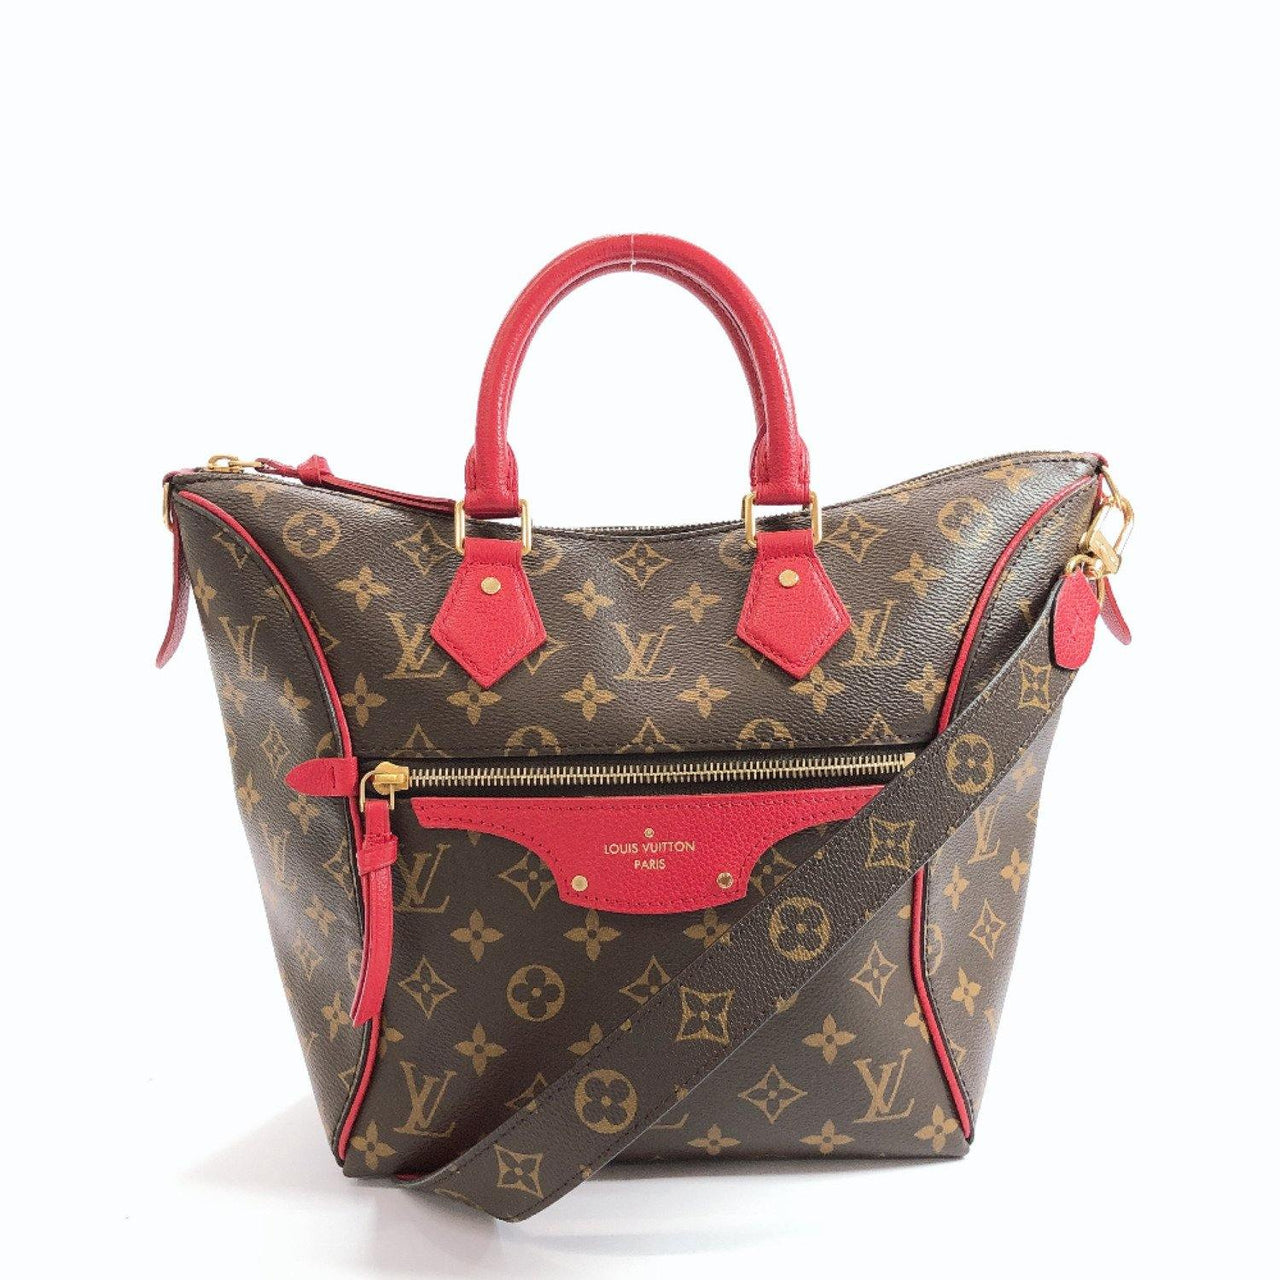 LOUIS VUITTON Tote Bag M44027 Turnel PM Monogram canvas Brown Women Used - JP-BRANDS.com